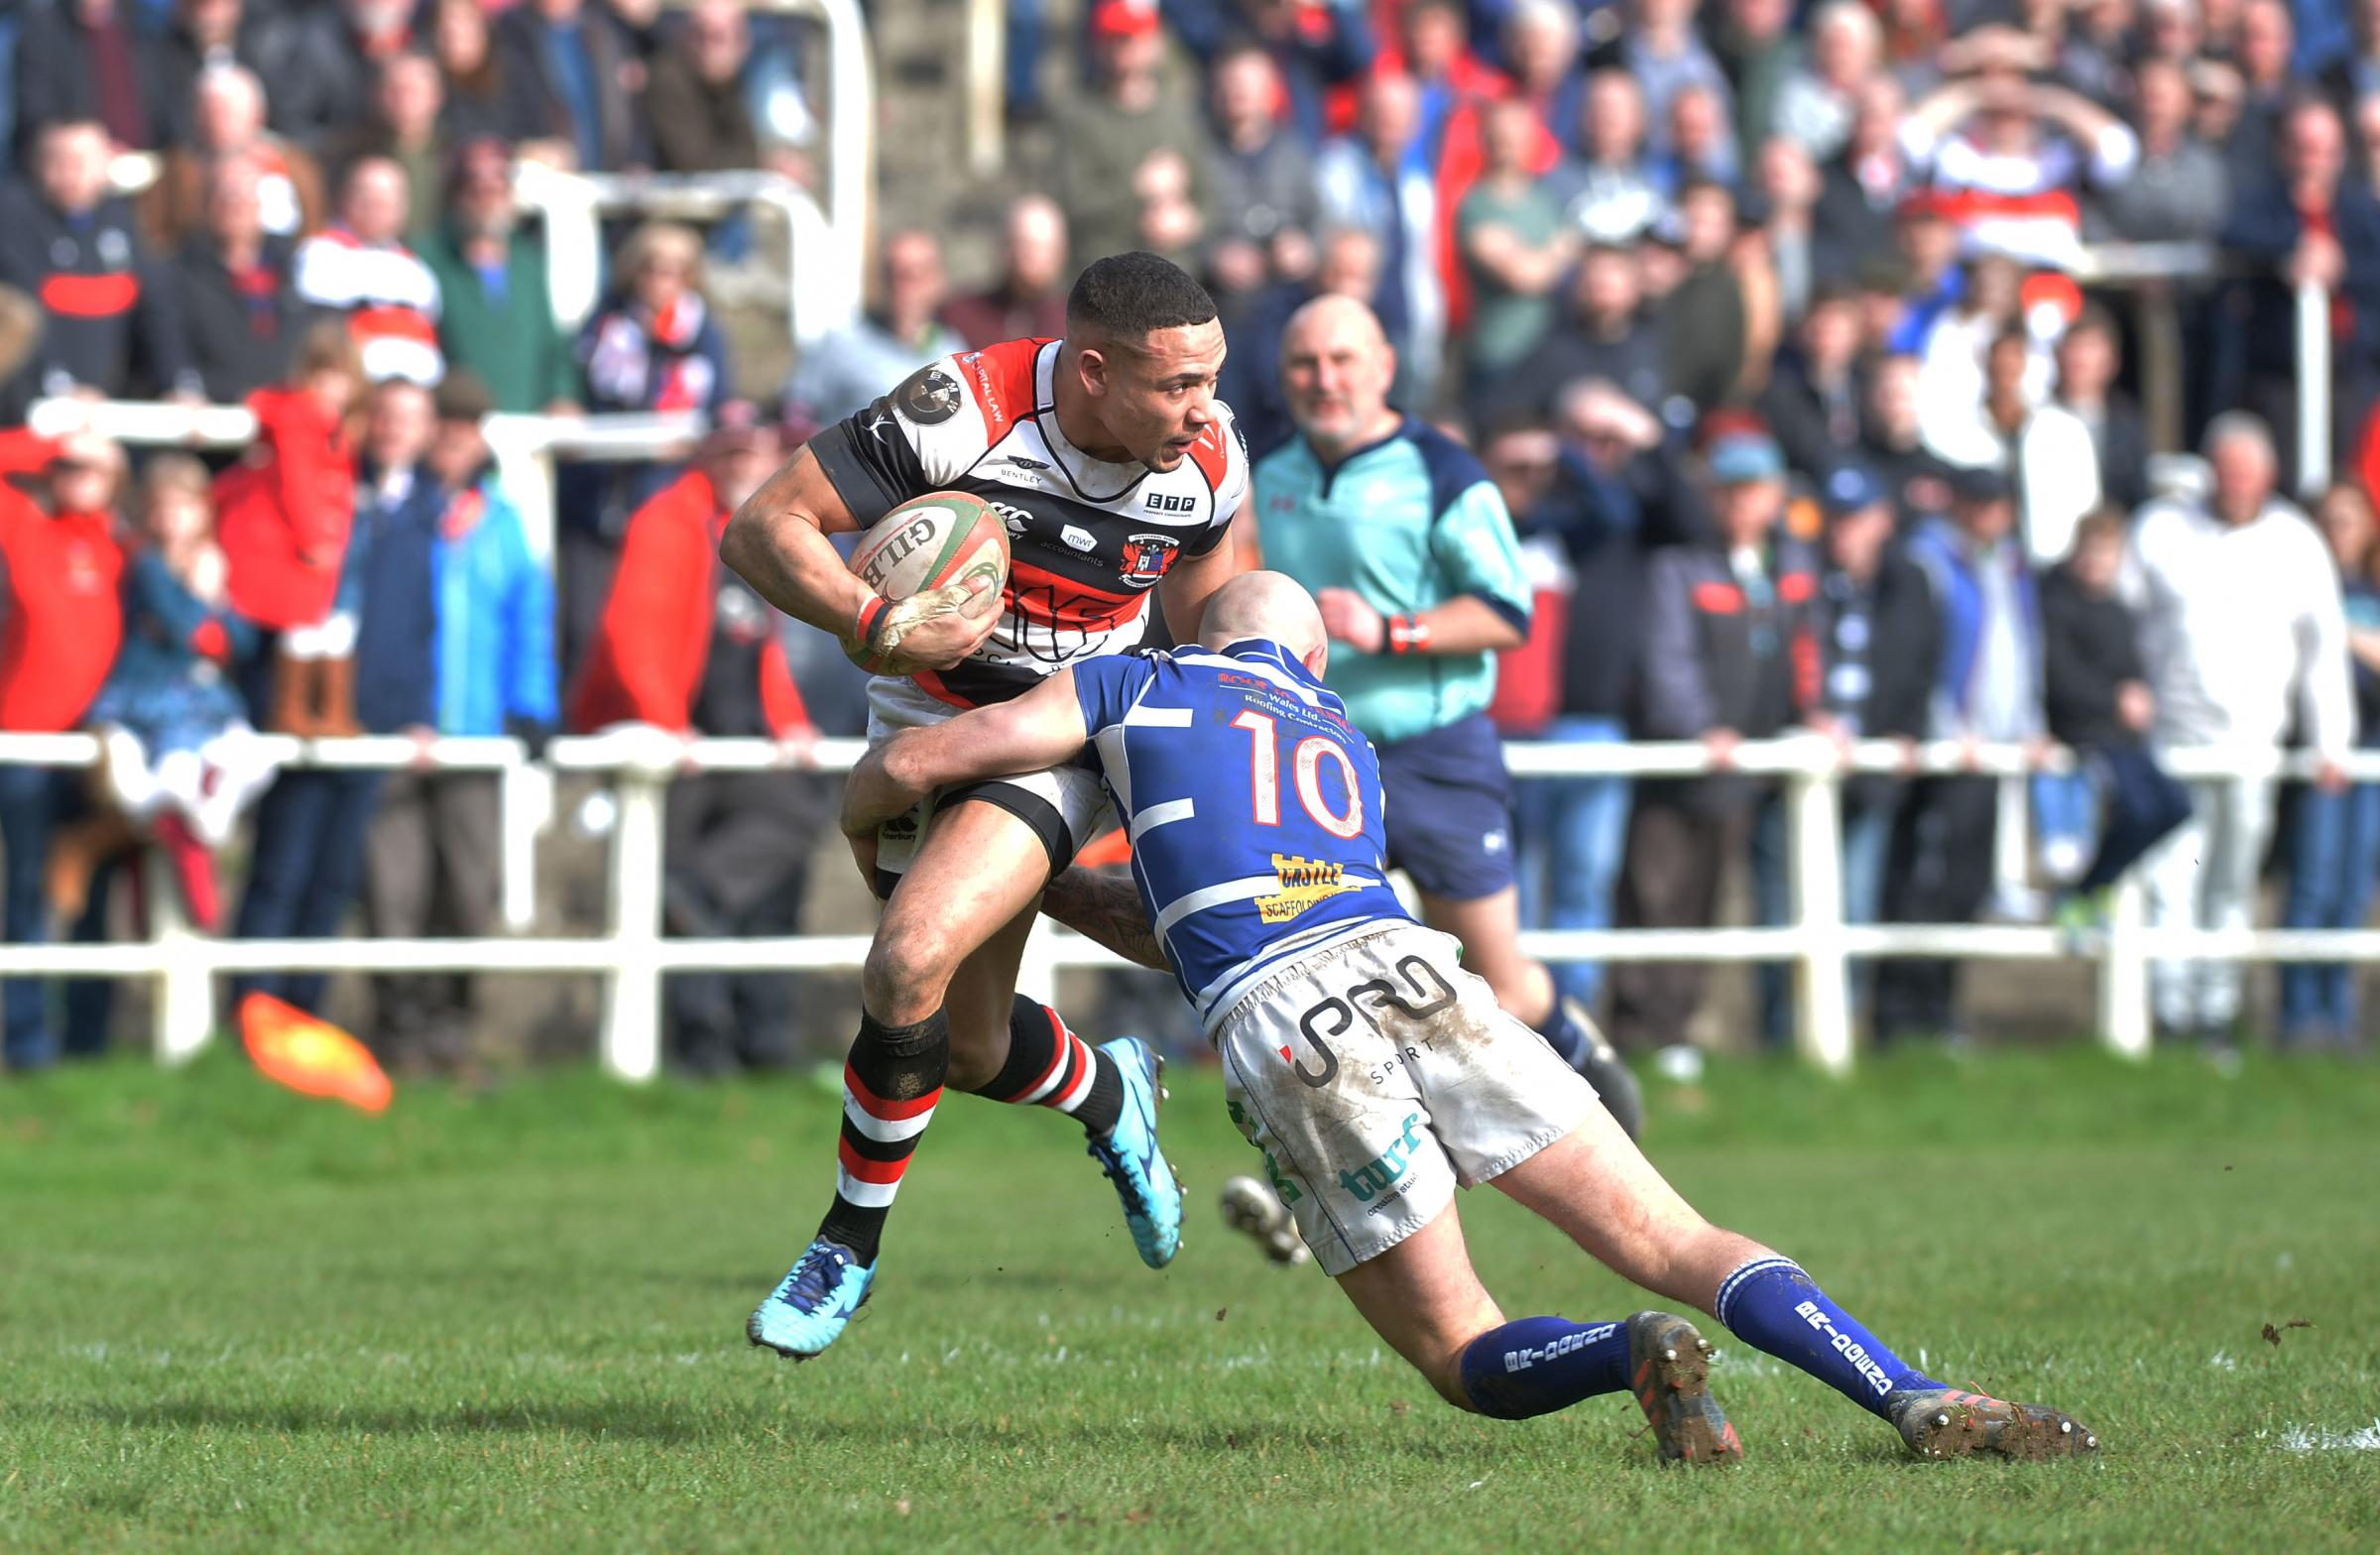 PLAY-OFF FOES? Pontypool edged out Bridgend in the cup this season and could face the Ravens again